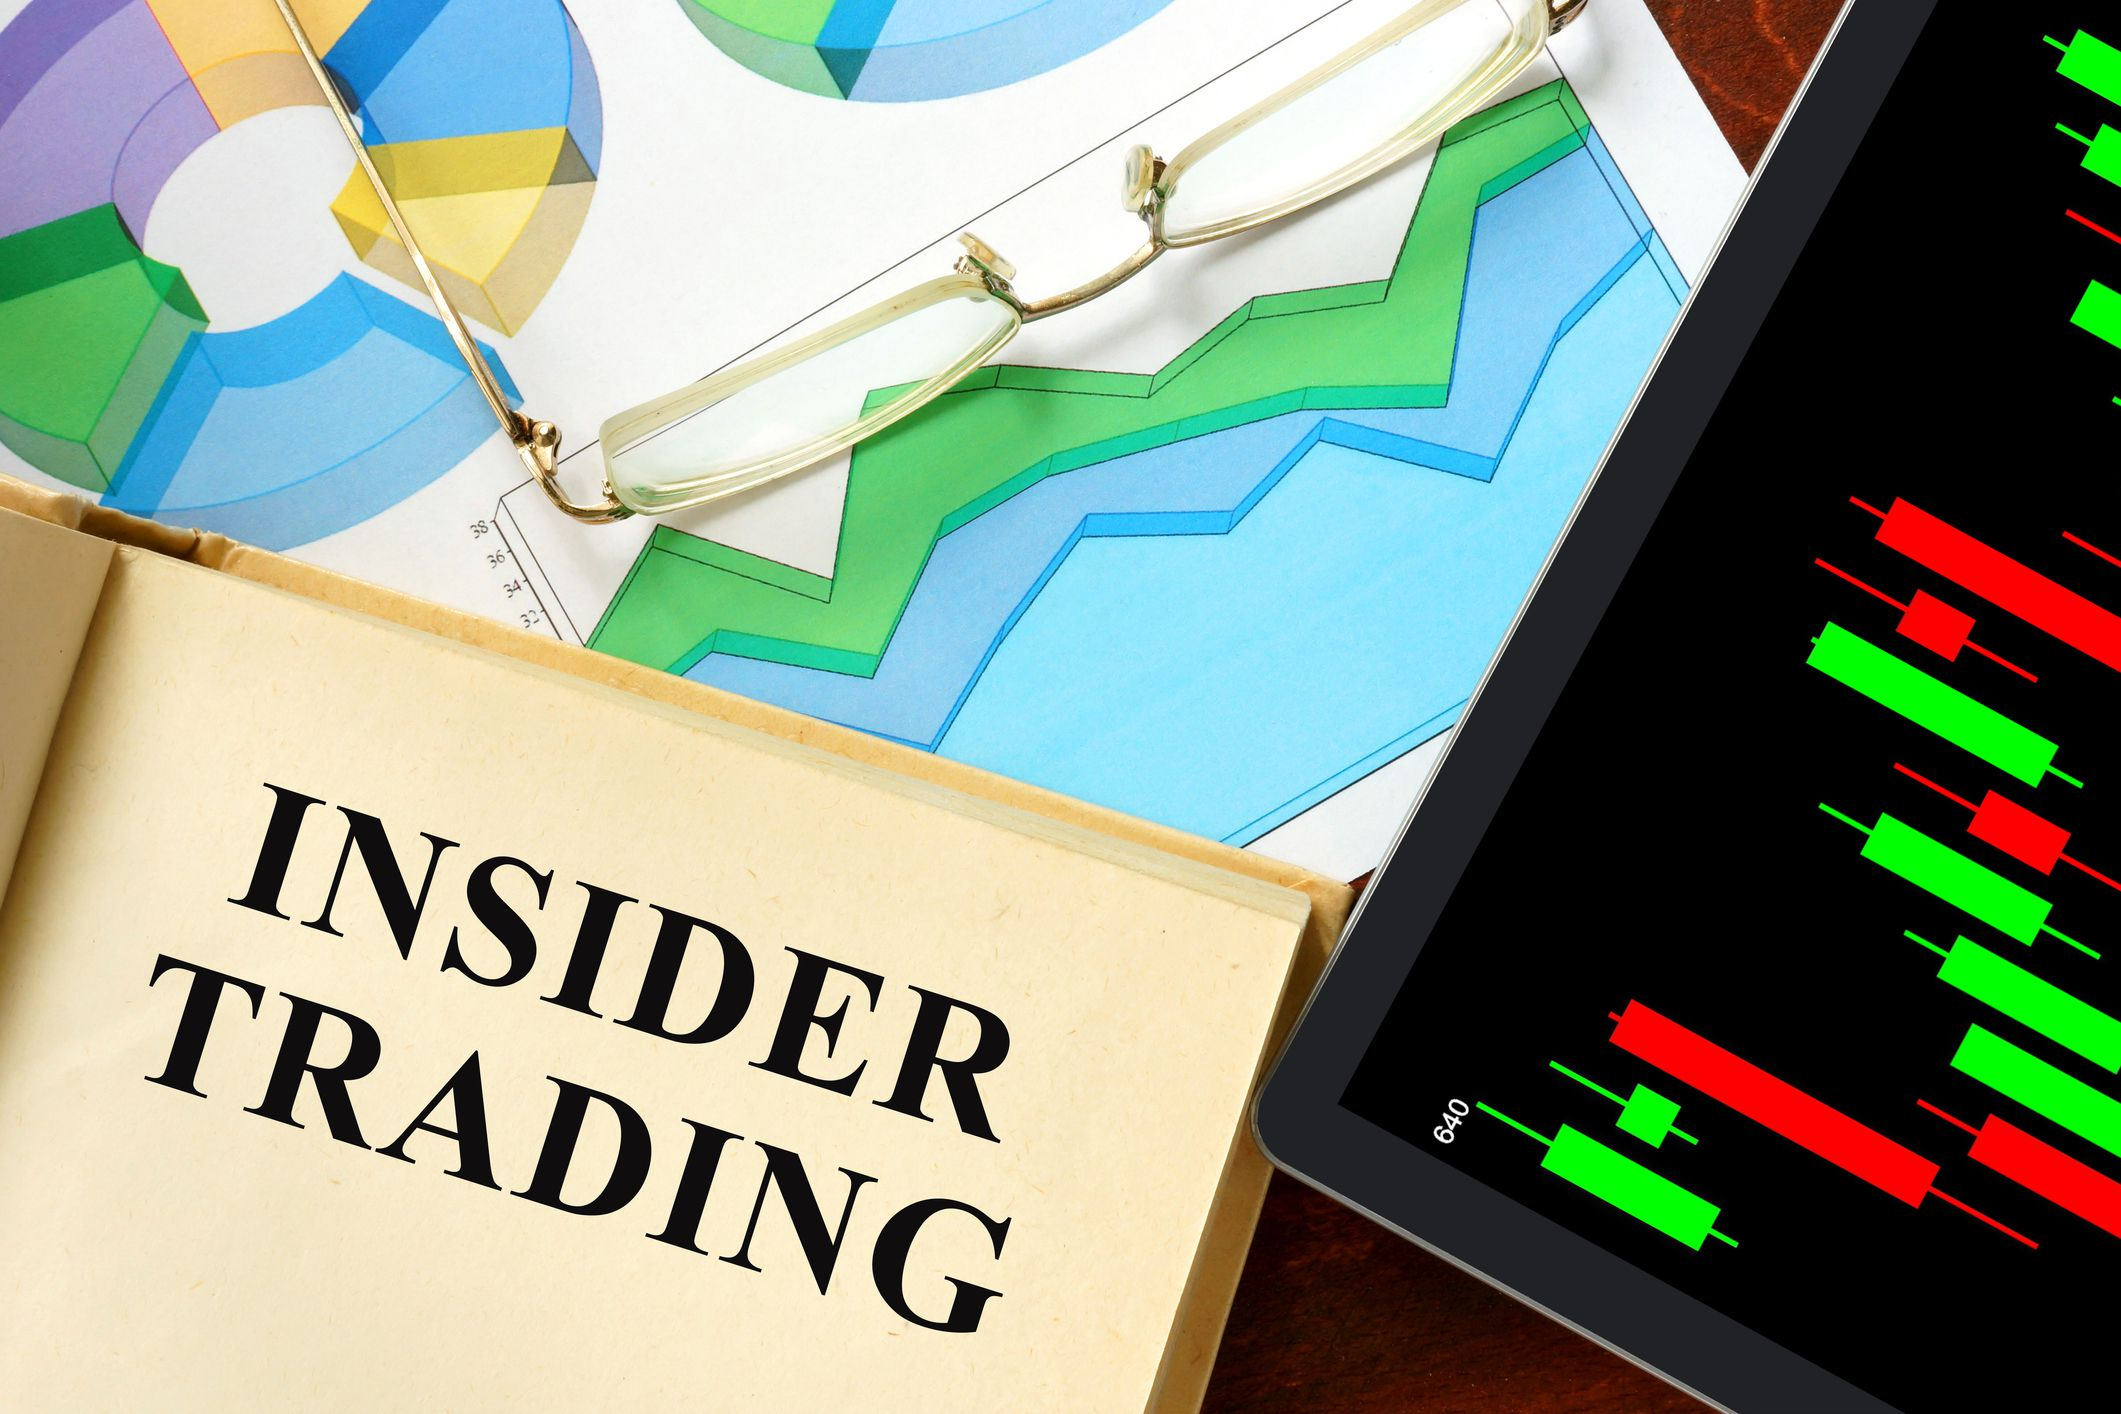 What Is Insider Trading And How Is It Done?